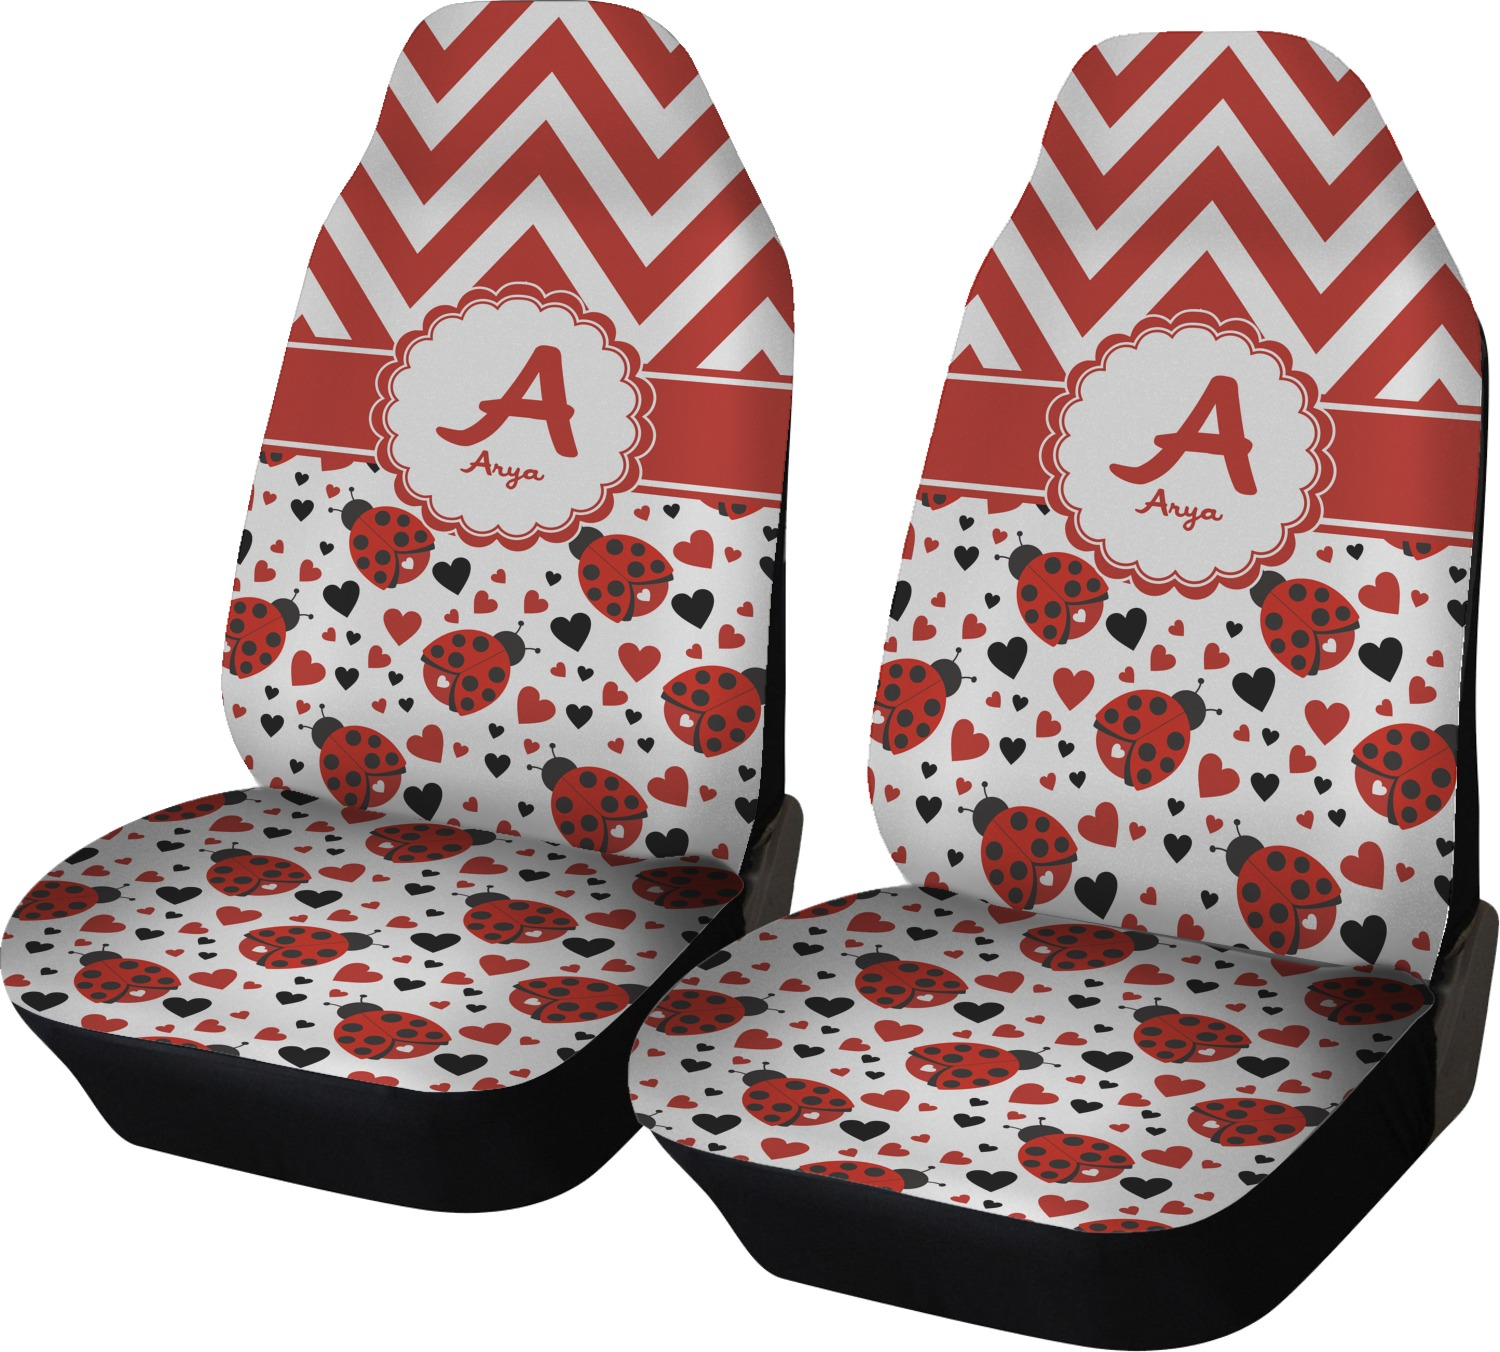 Ladybugs Amp Chevron Car Seat Covers Set Of Two